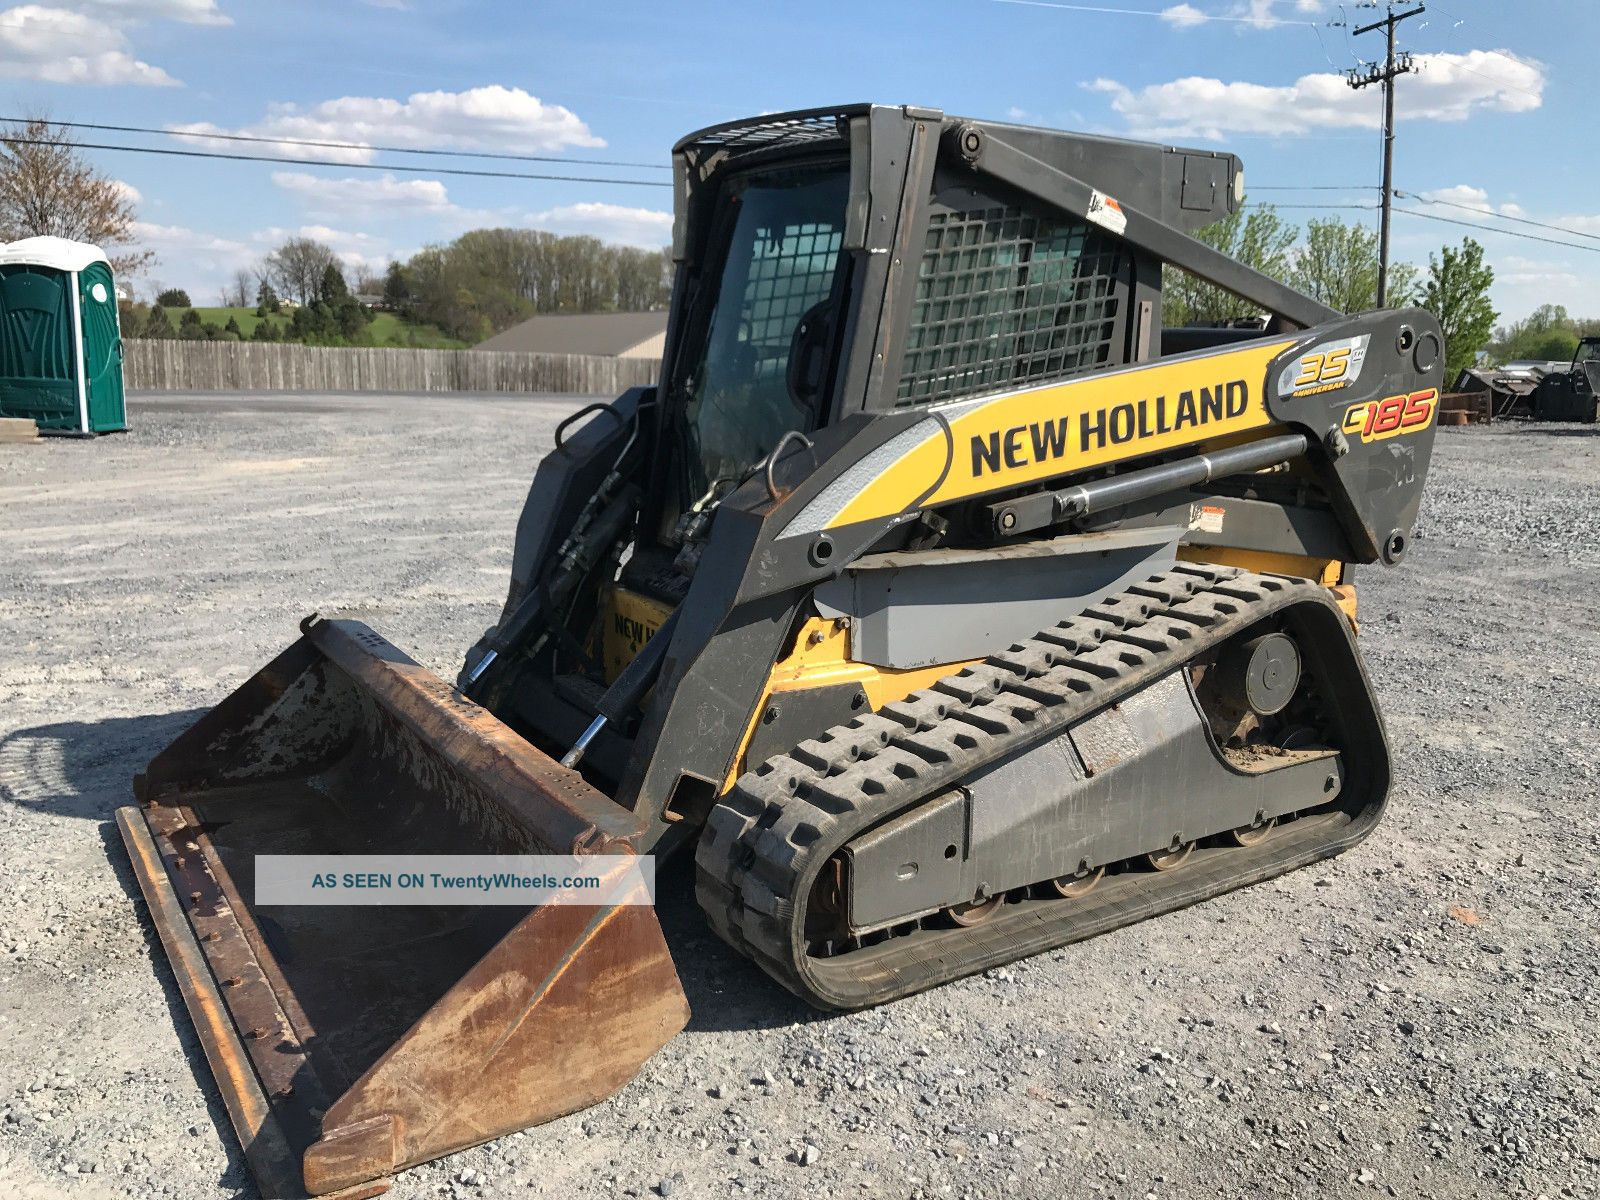 2009 Holland C185 Tracked Skid Steer Loader W/ Cab Skid Steer Loaders photo